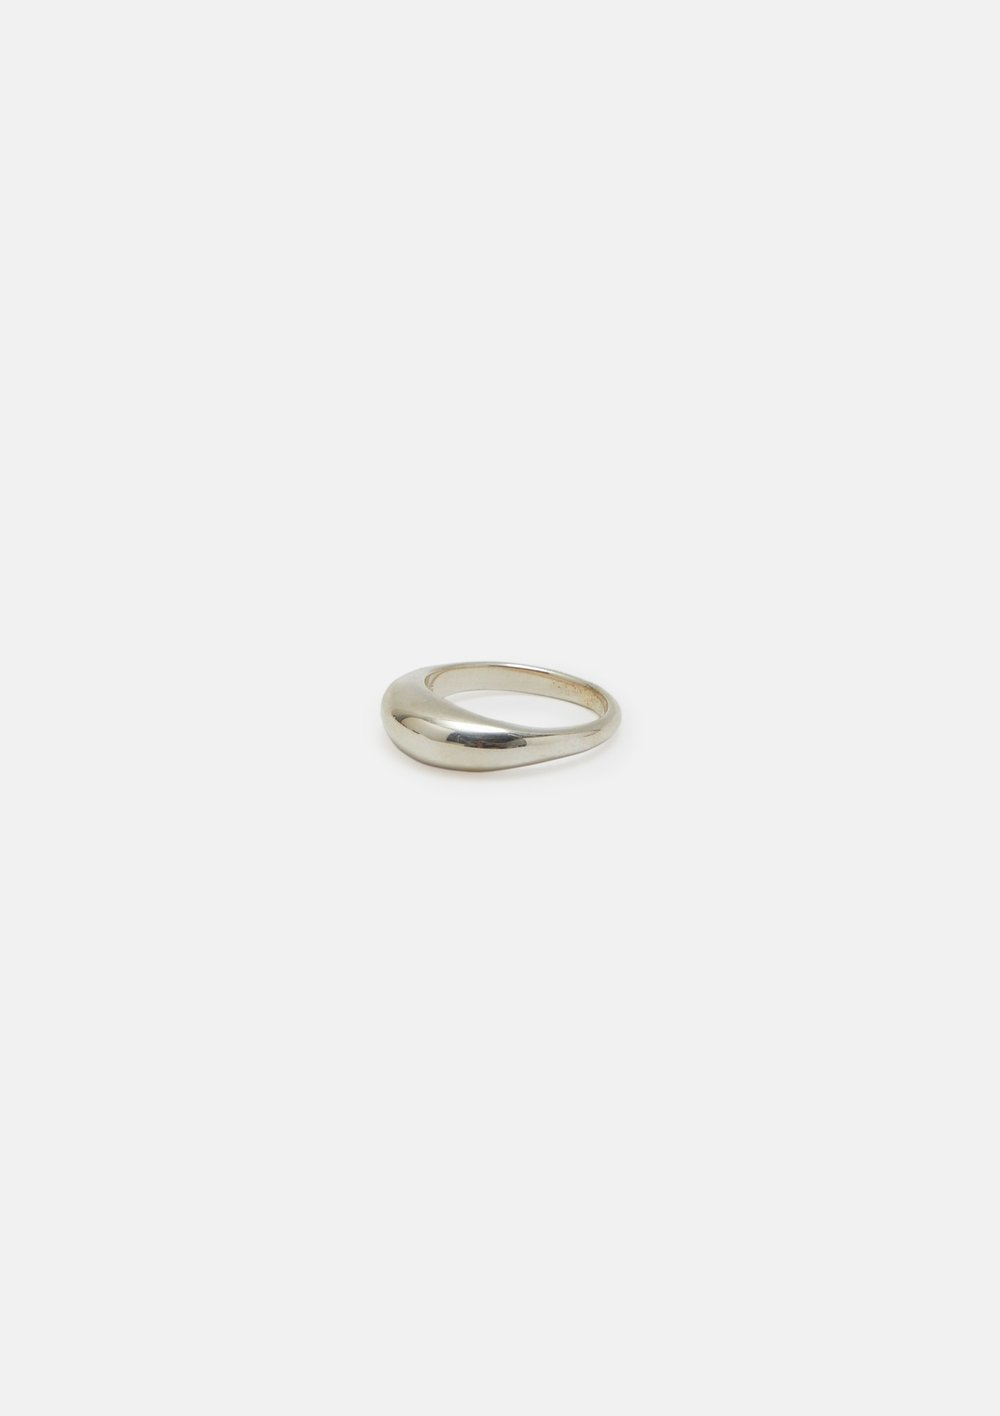 SOPHIE BUHAI Single Stacking Ring Silver band ring with a thicker, raised top. Stackable. Hallmark and logo engraving inside. Color: Silver. 100% Sterling Silver.